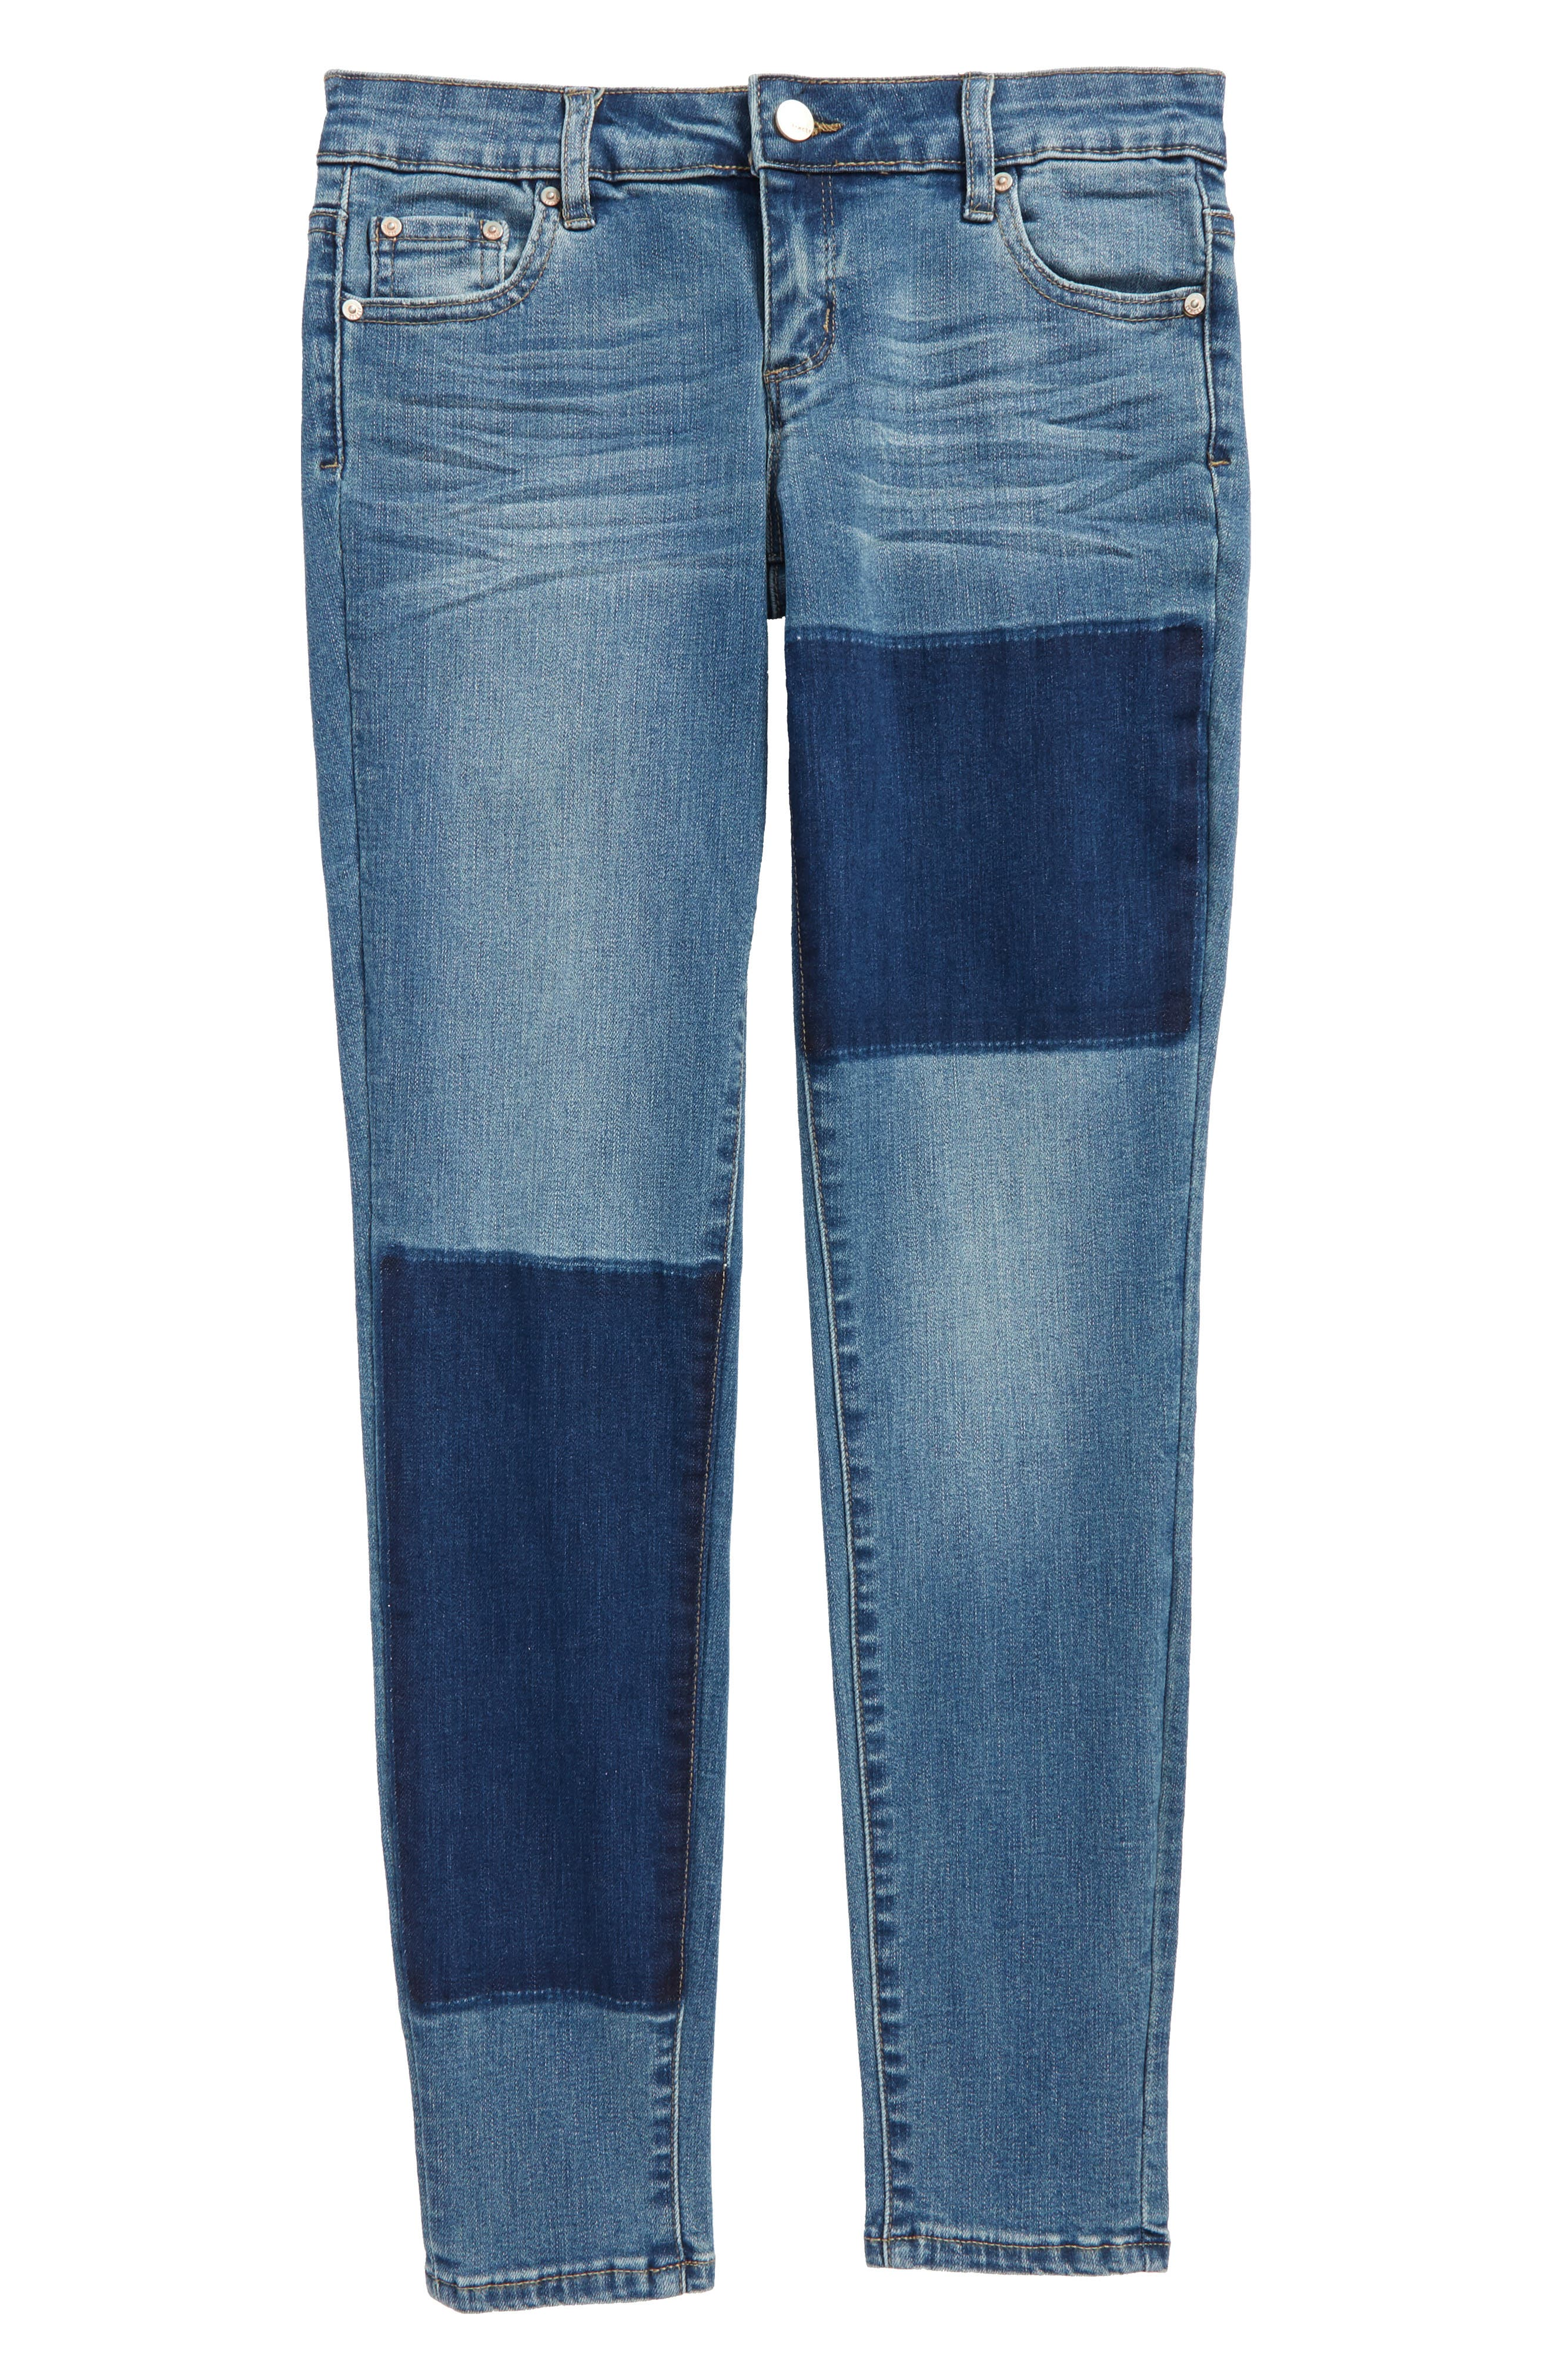 Patch Ankle Skinny Jeans,                         Main,                         color, Indigo